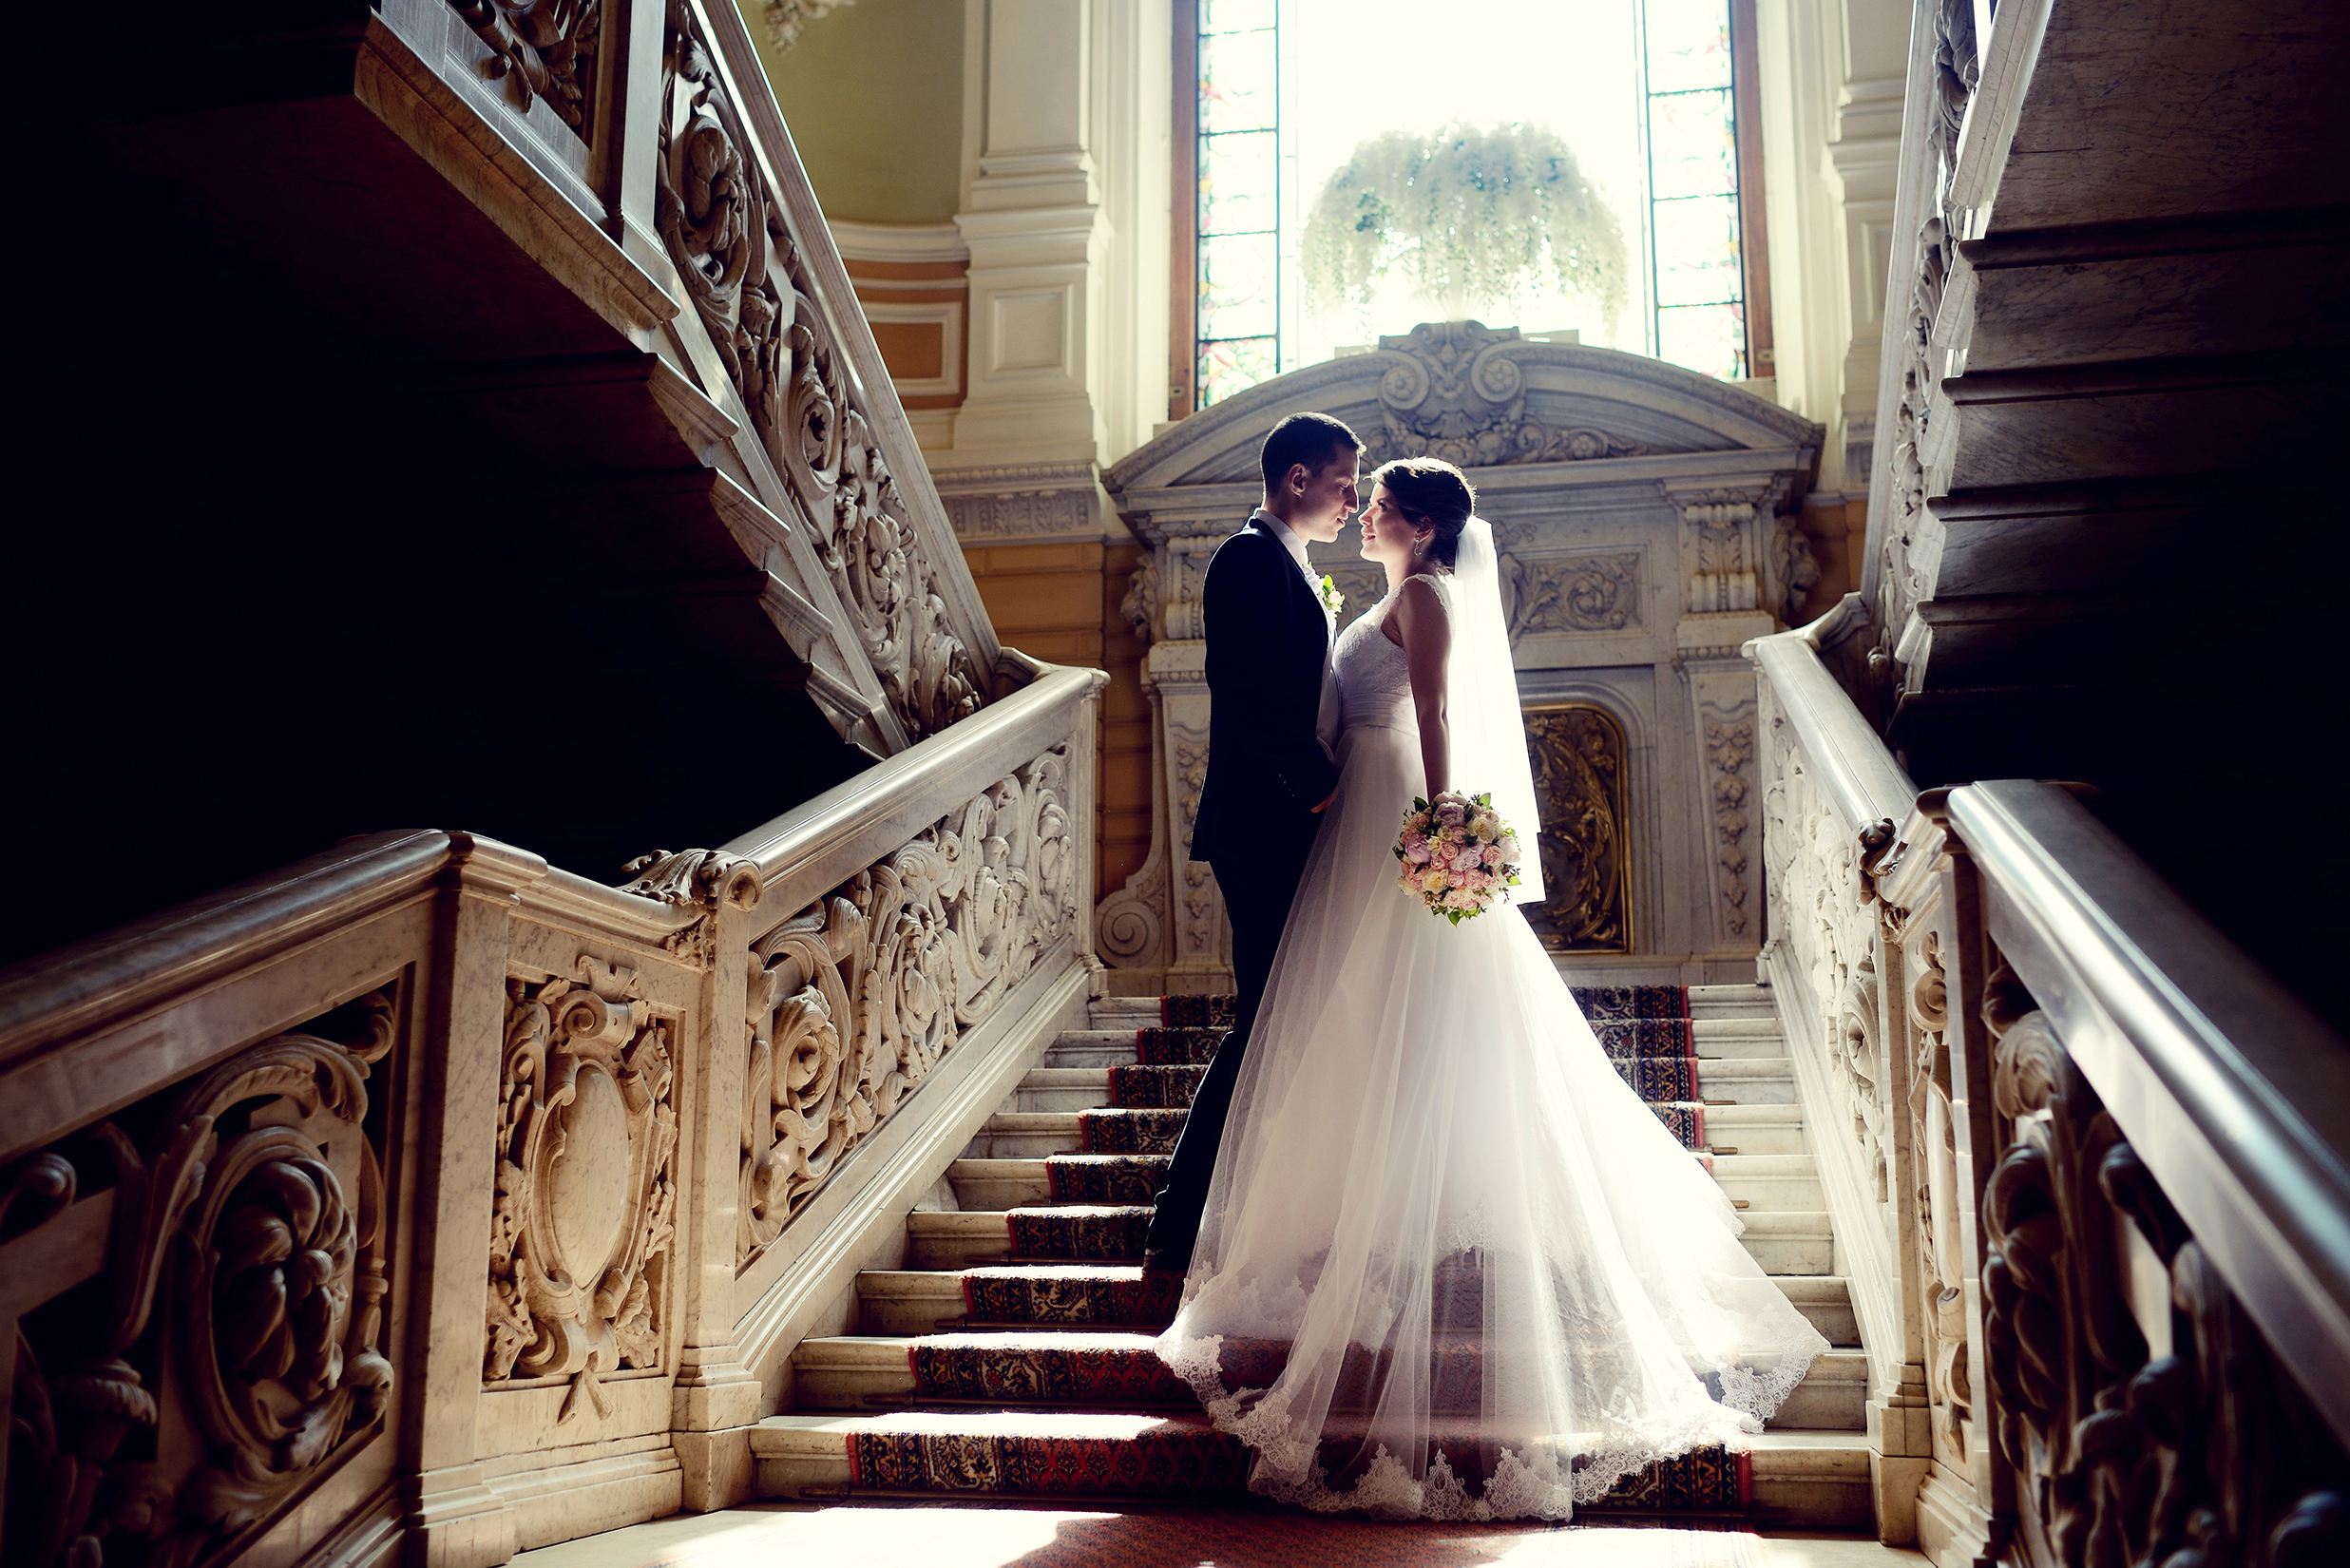 Wedding Suits to Buy